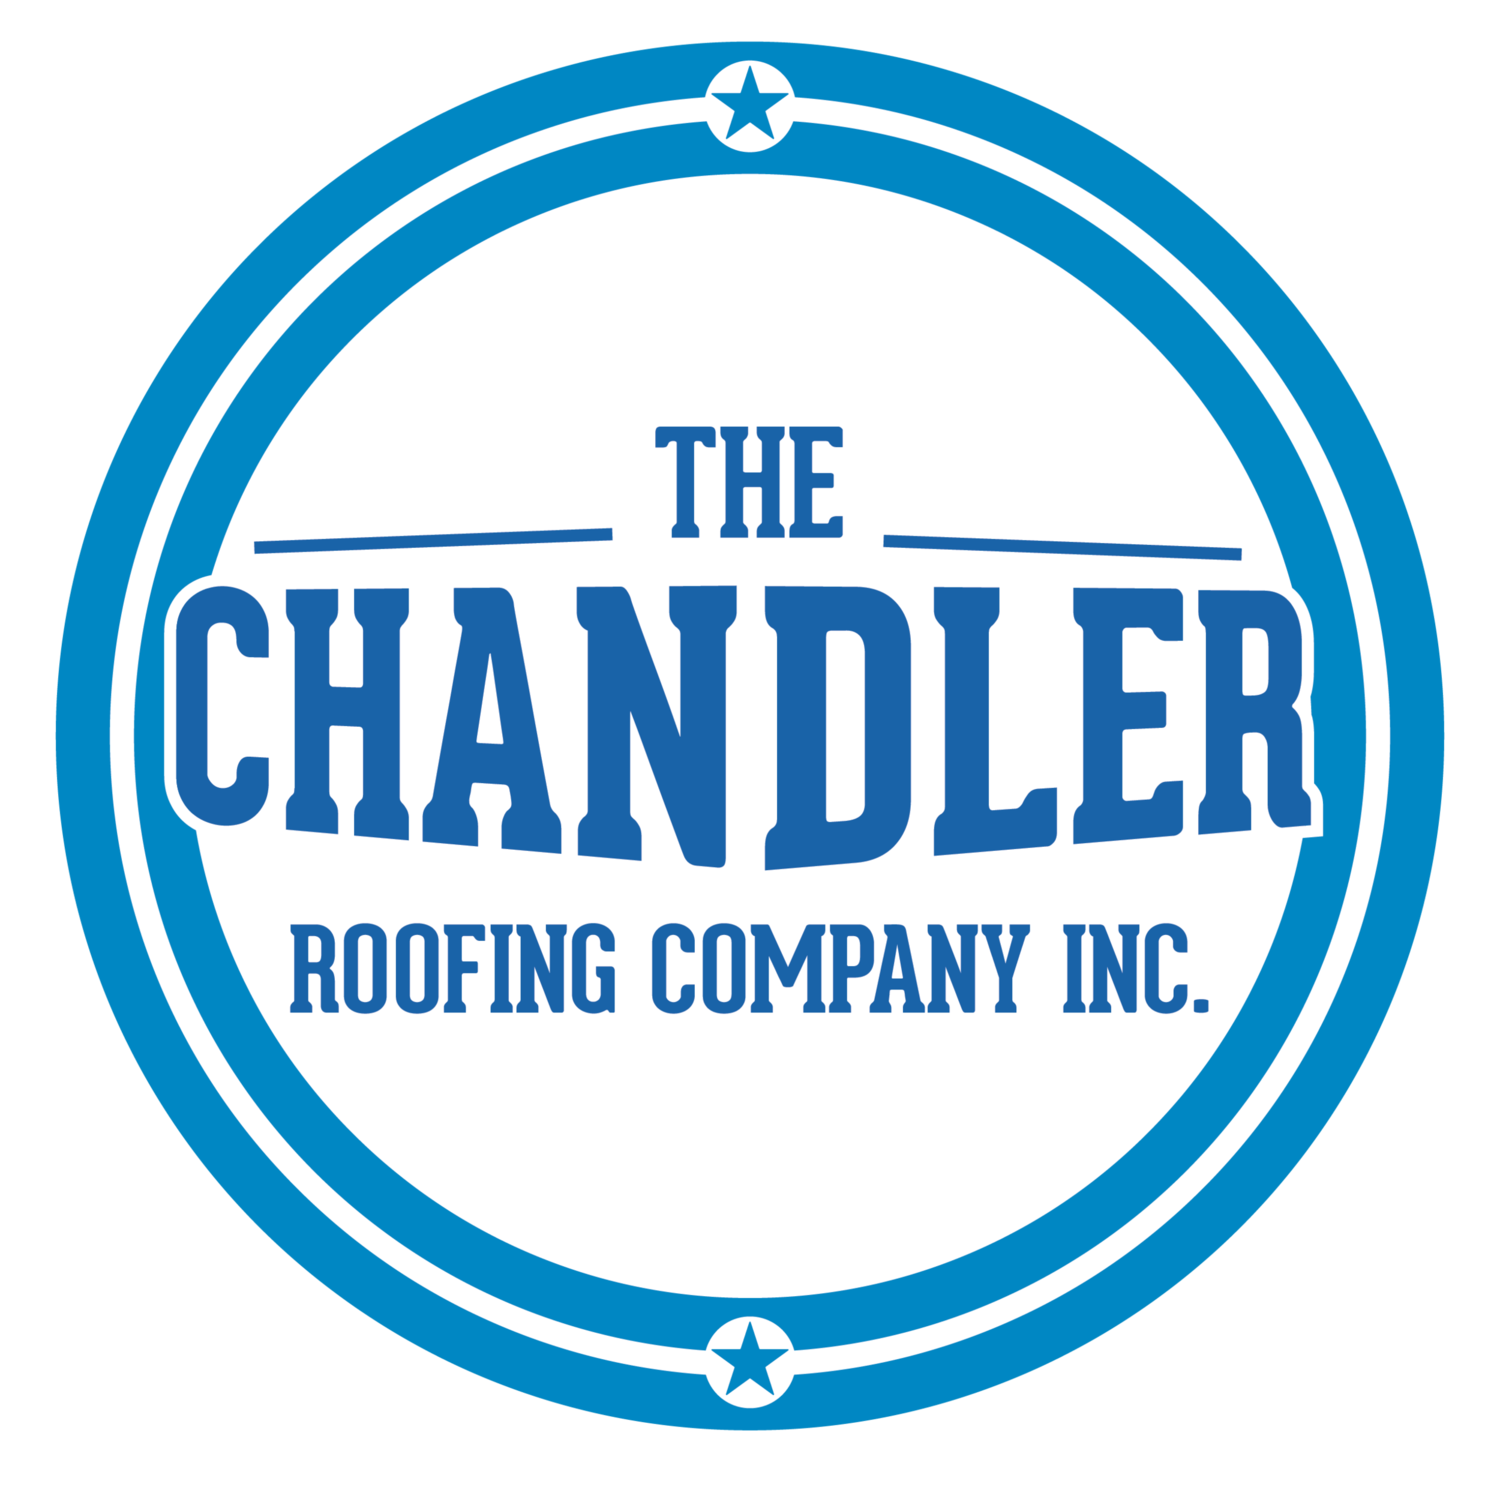 Chandler Roofing Company